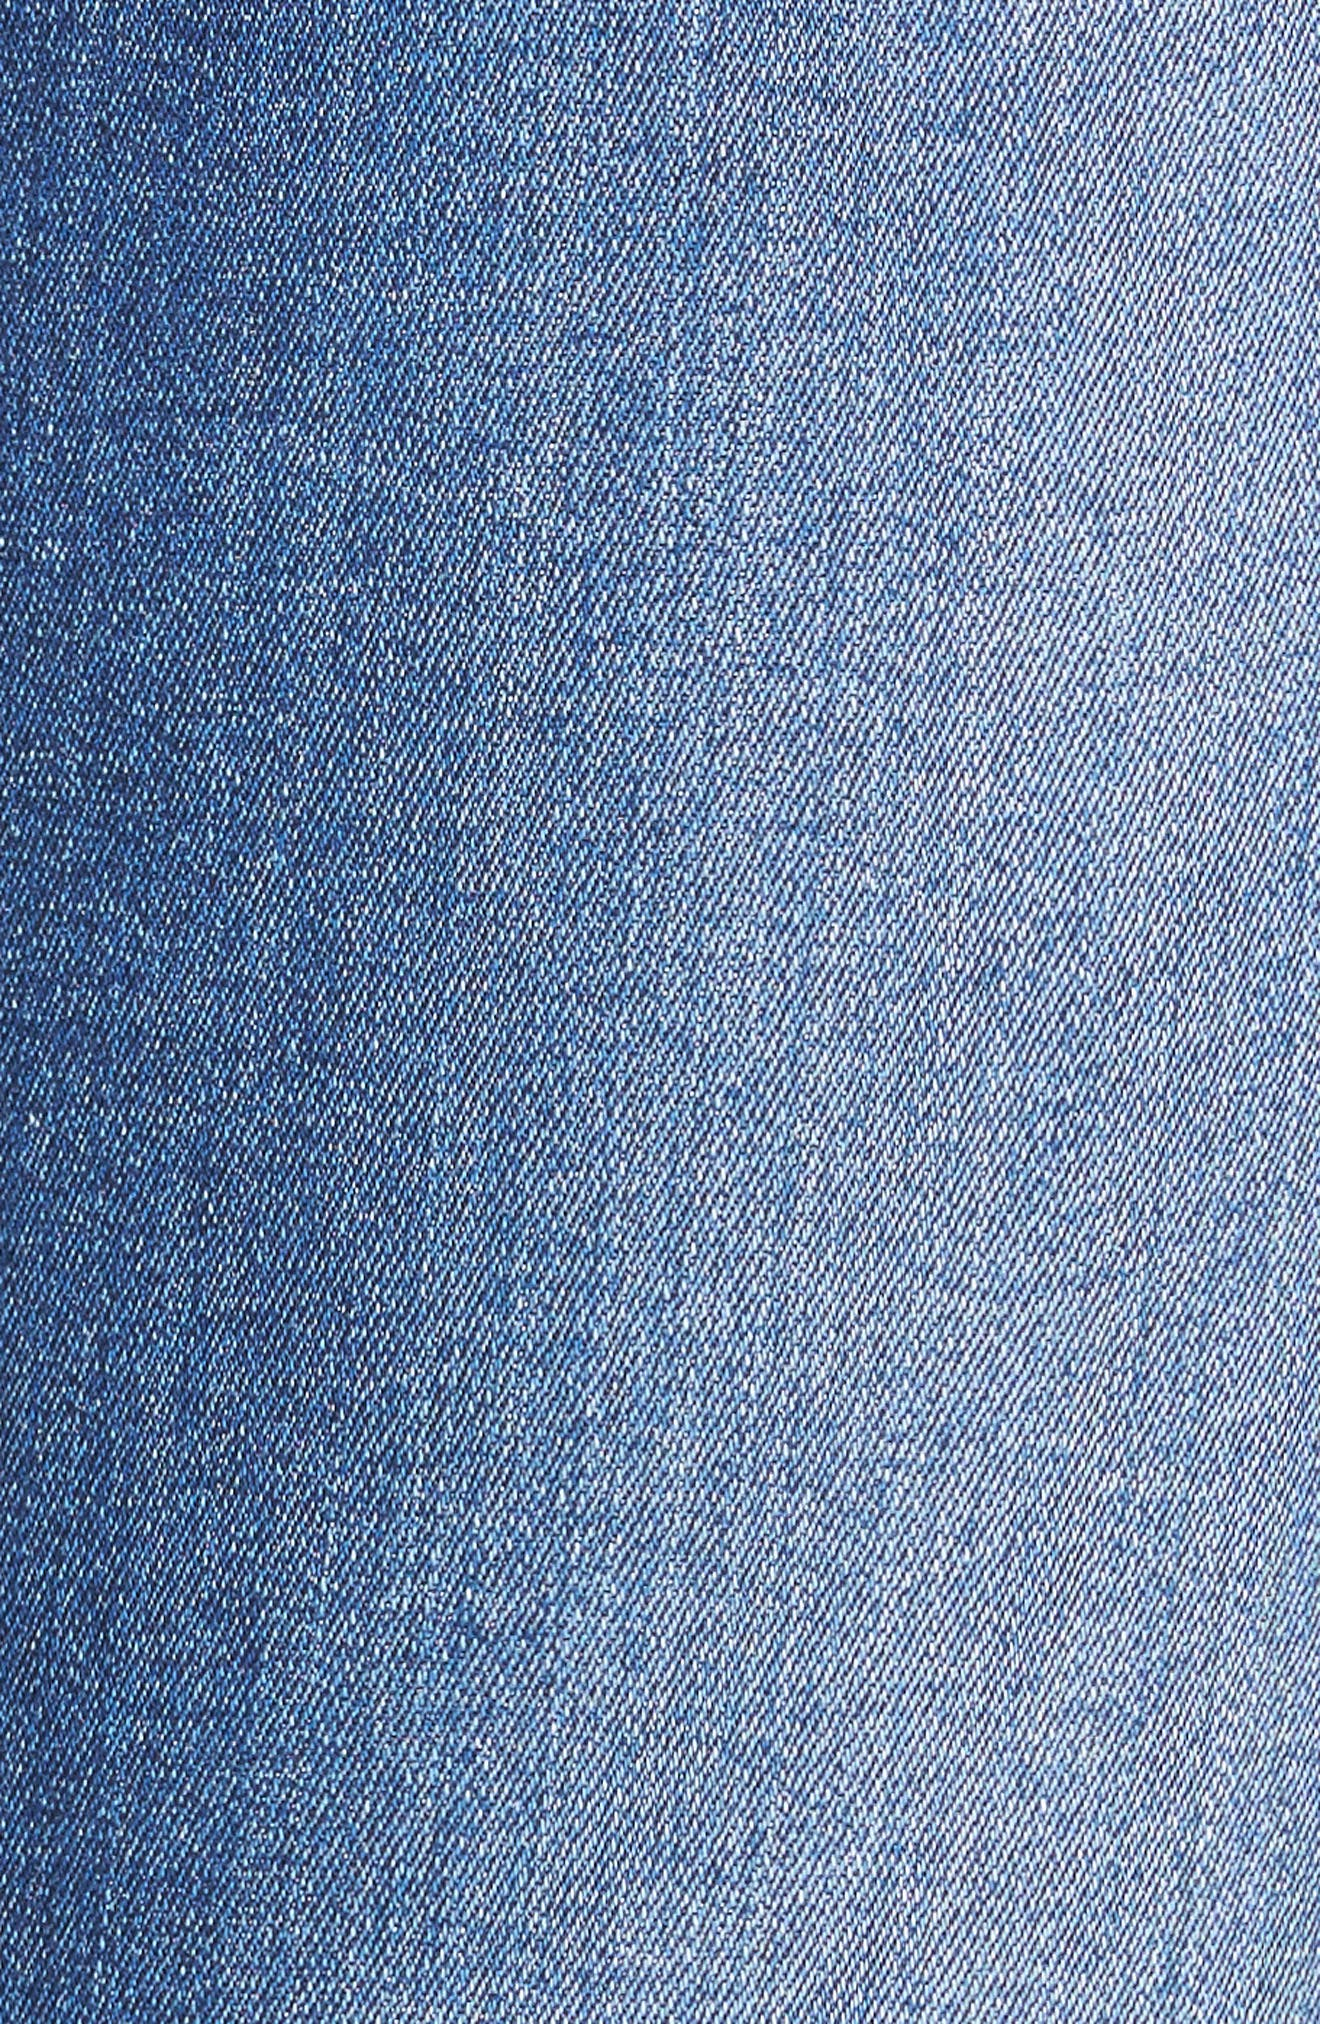 'b(air) - The Ankle' Skinny Jeans,                             Alternate thumbnail 30, color,